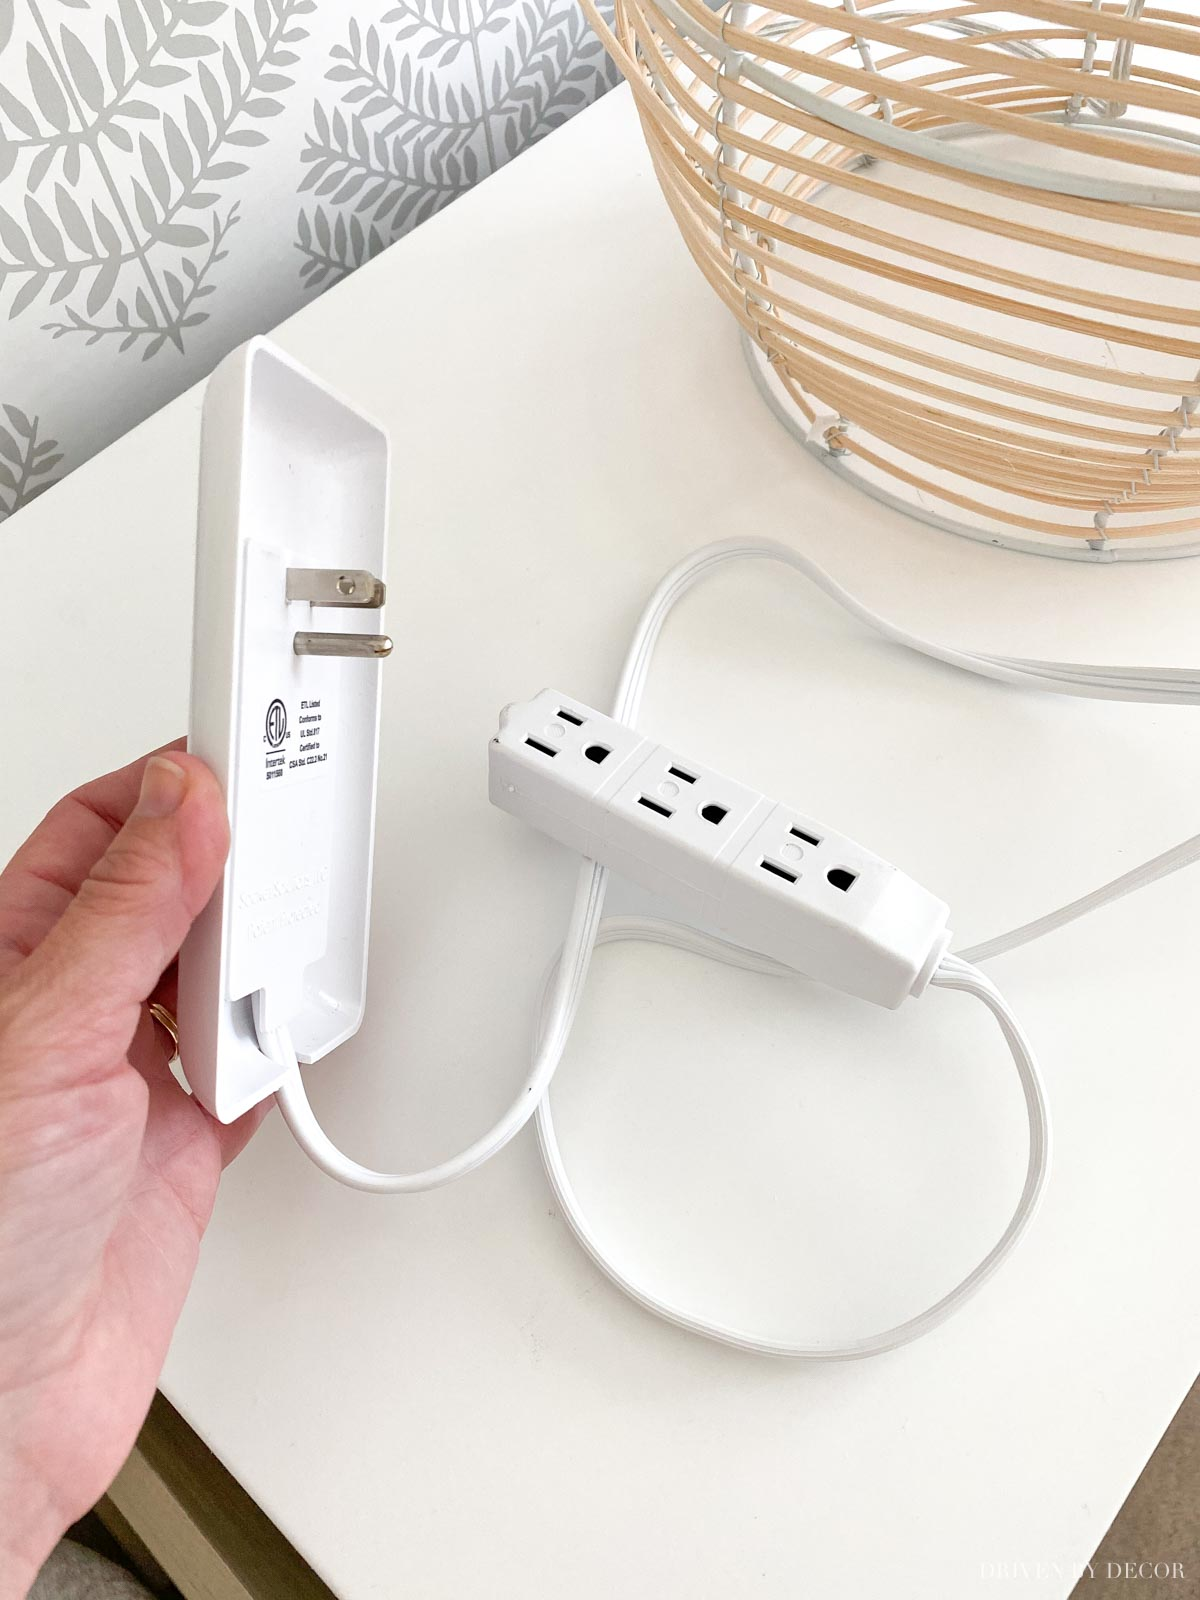 The perfect solution for when your outlet is behind a piece of furniture!